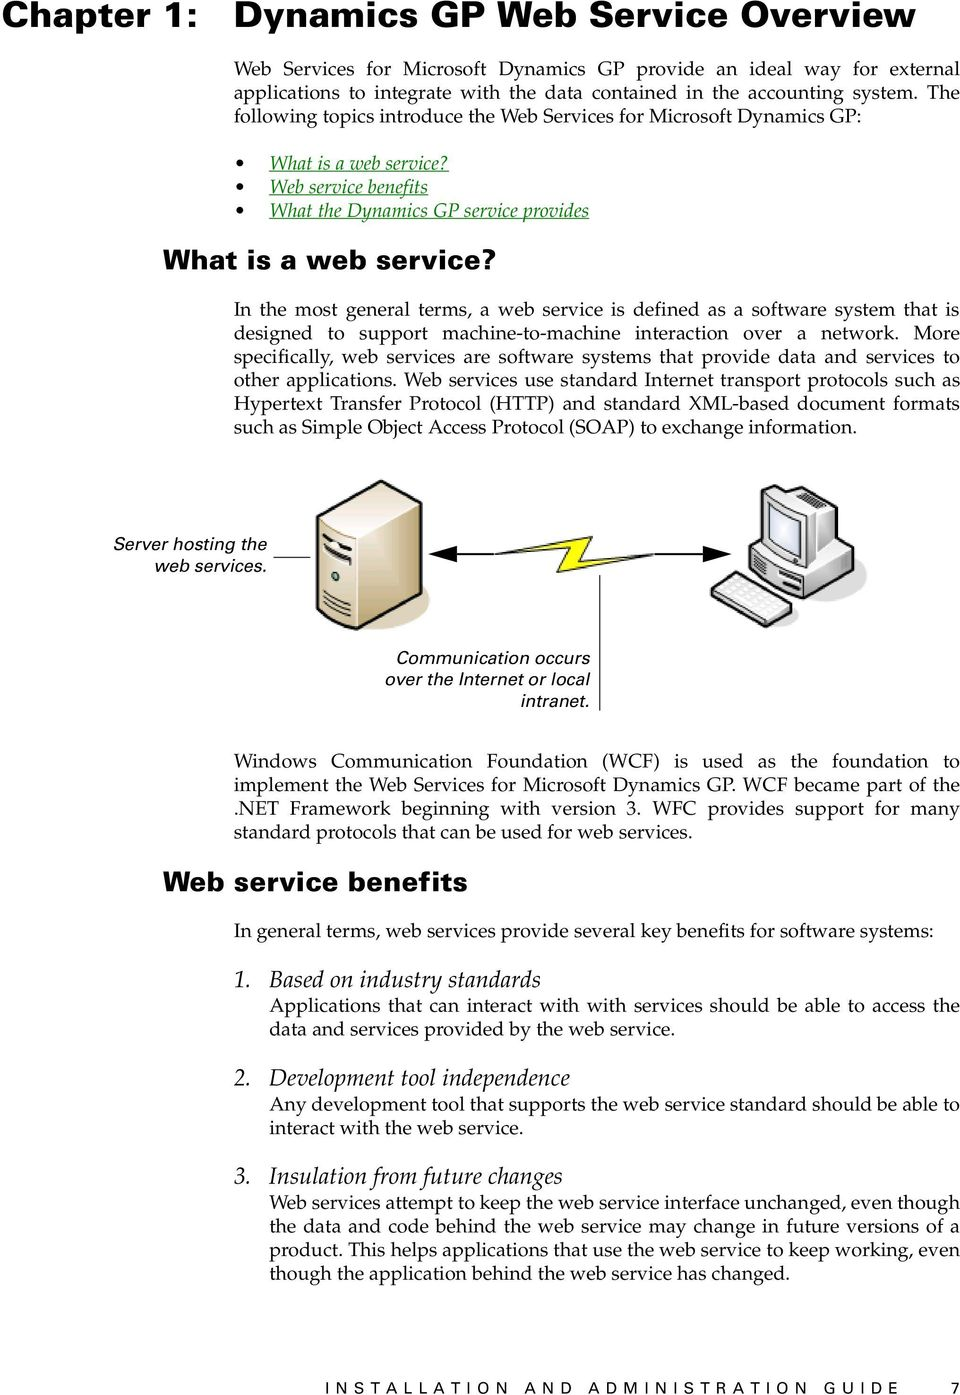 In the most general terms, a web service is defined as a software system that is designed to support machine-to-machine interaction over a network.